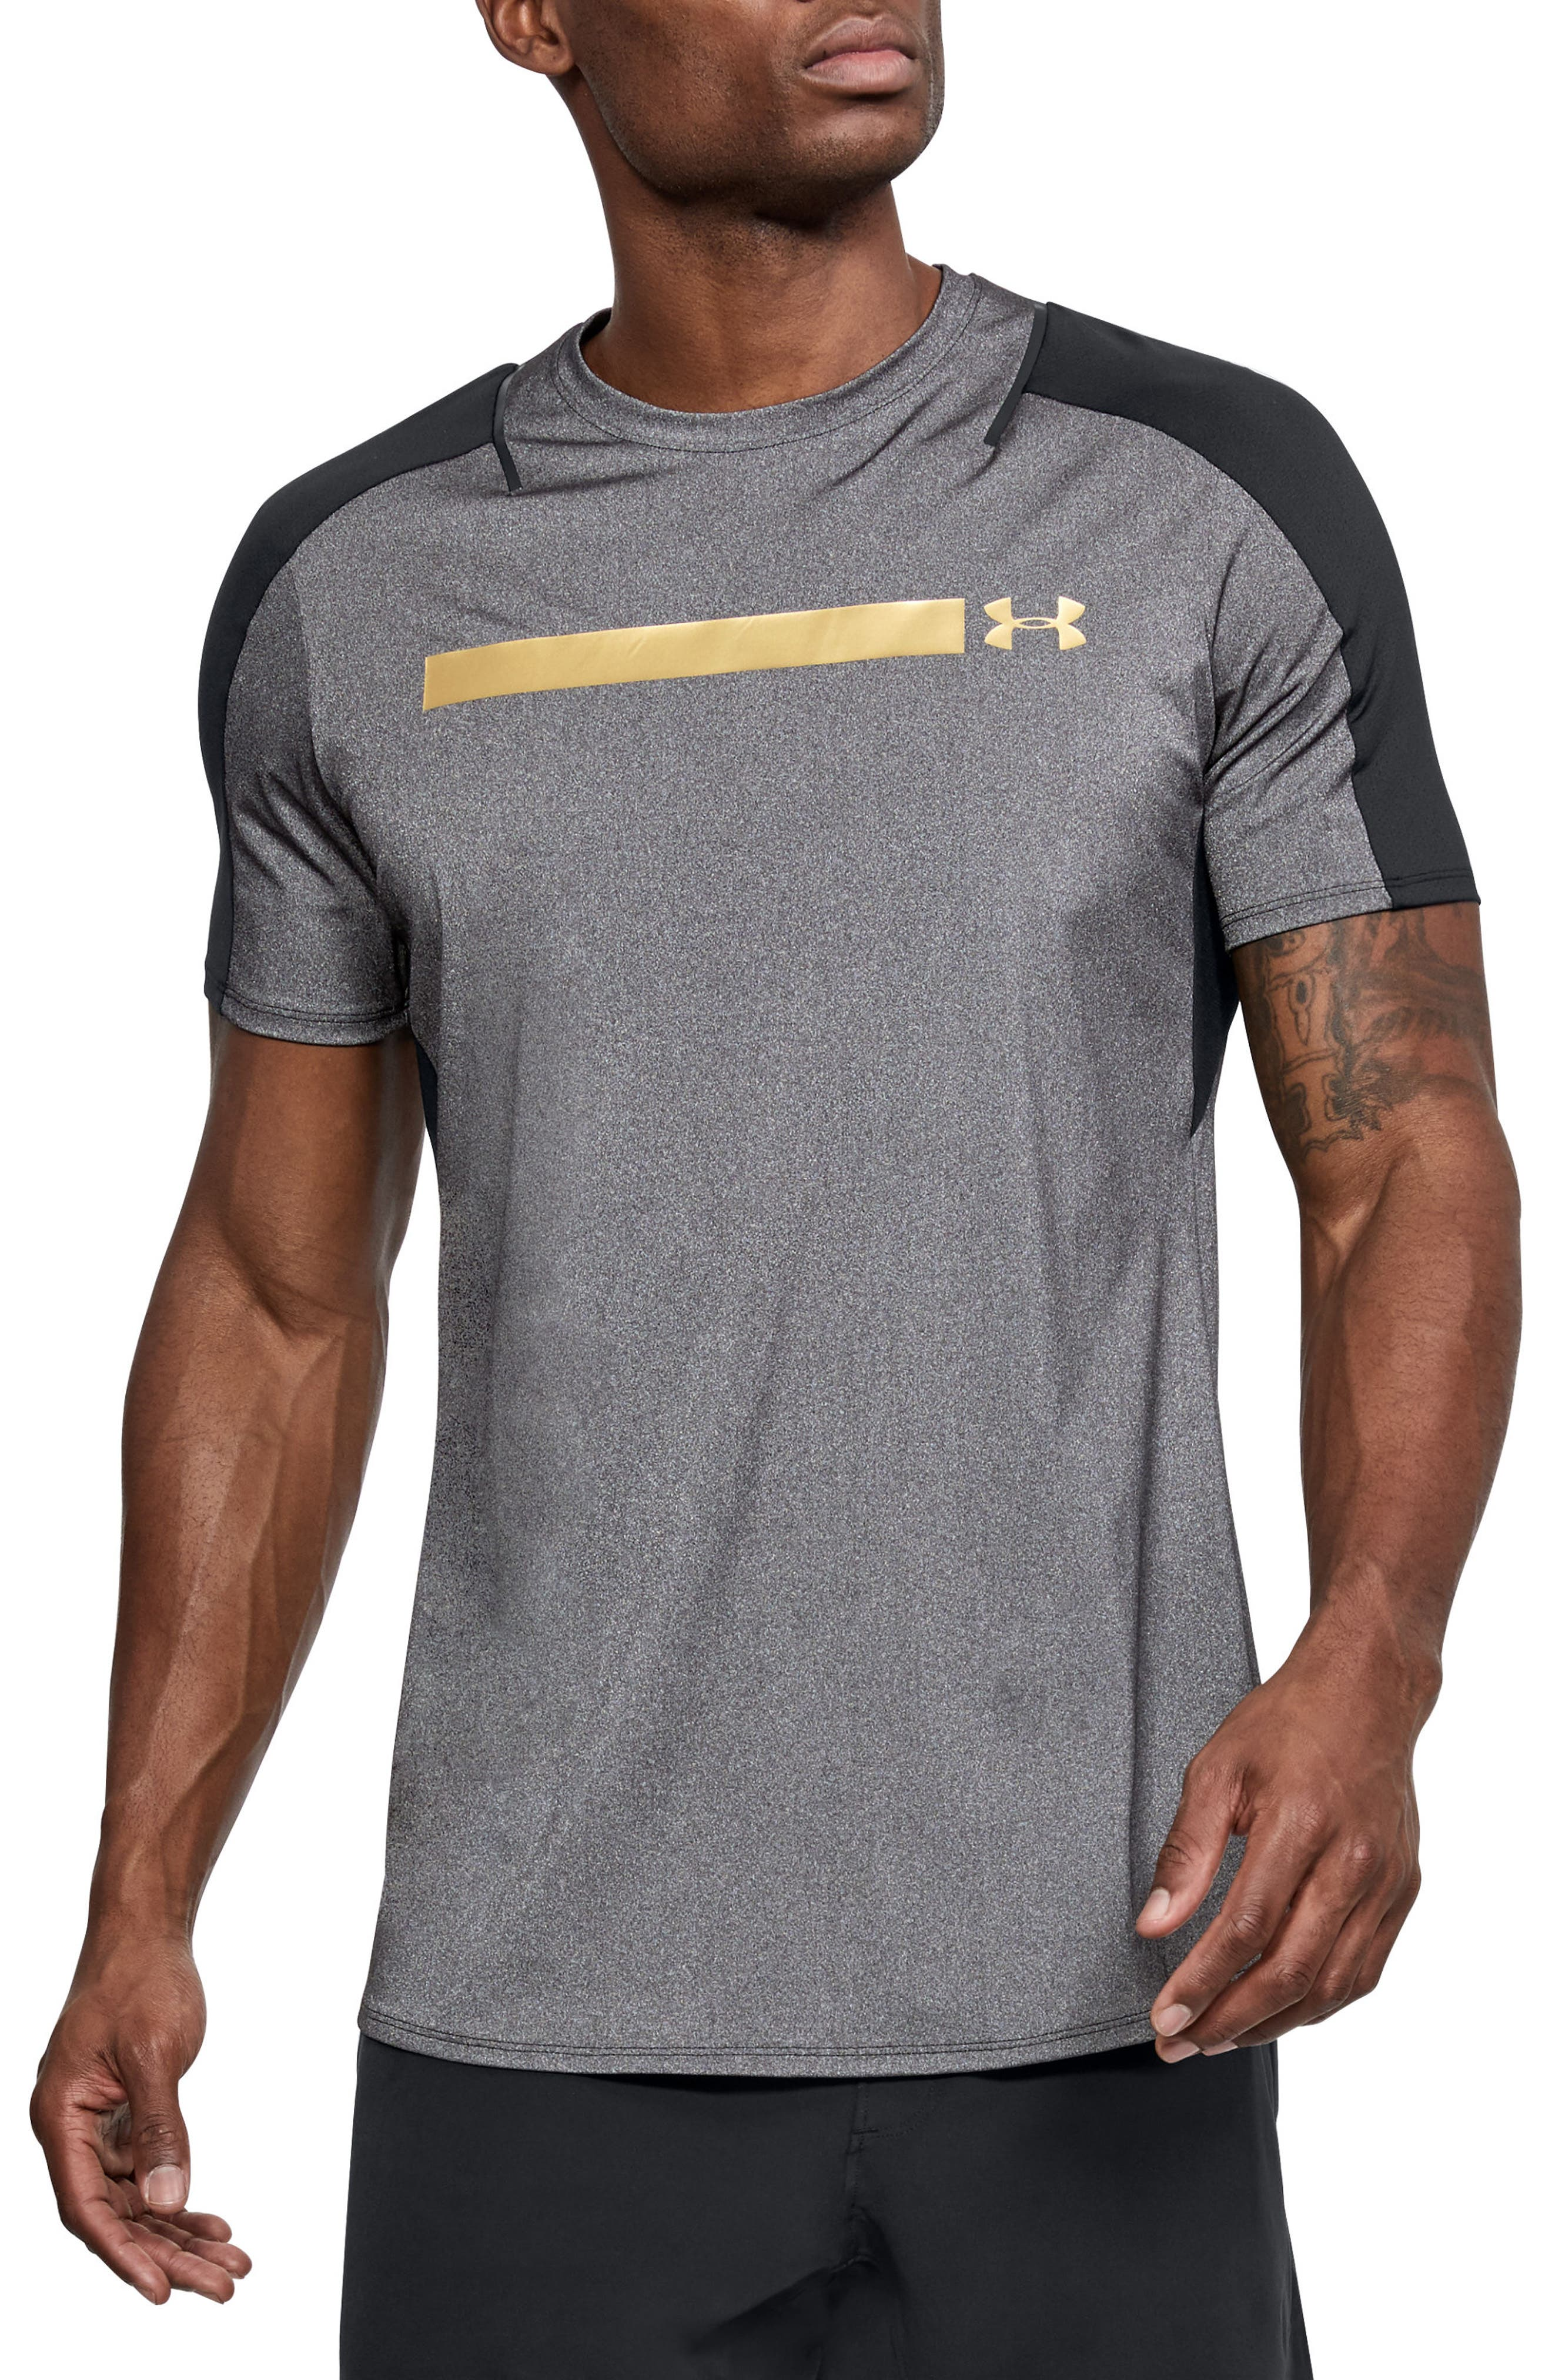 Perpetual Fitted Shirt,                             Main thumbnail 1, color,                             Black/ Metallic Victory Gold